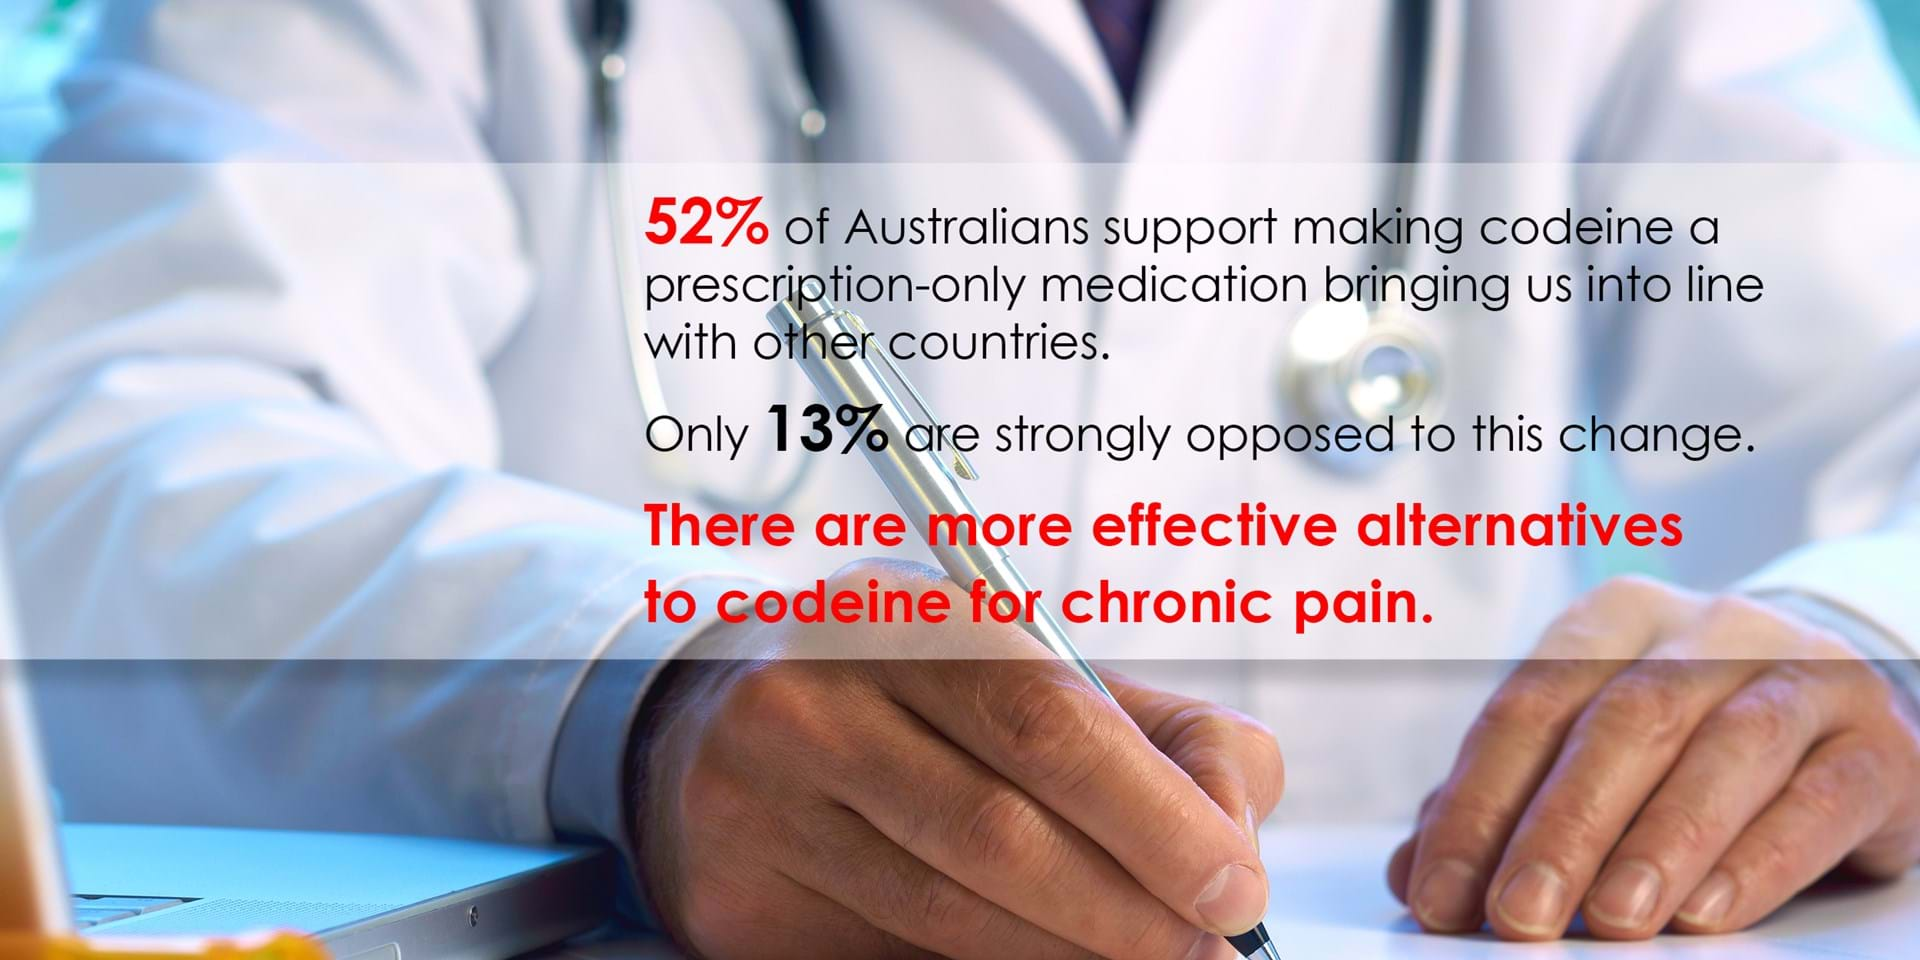 New research shows most Australians support rescheduling of #codeine to prescription only.